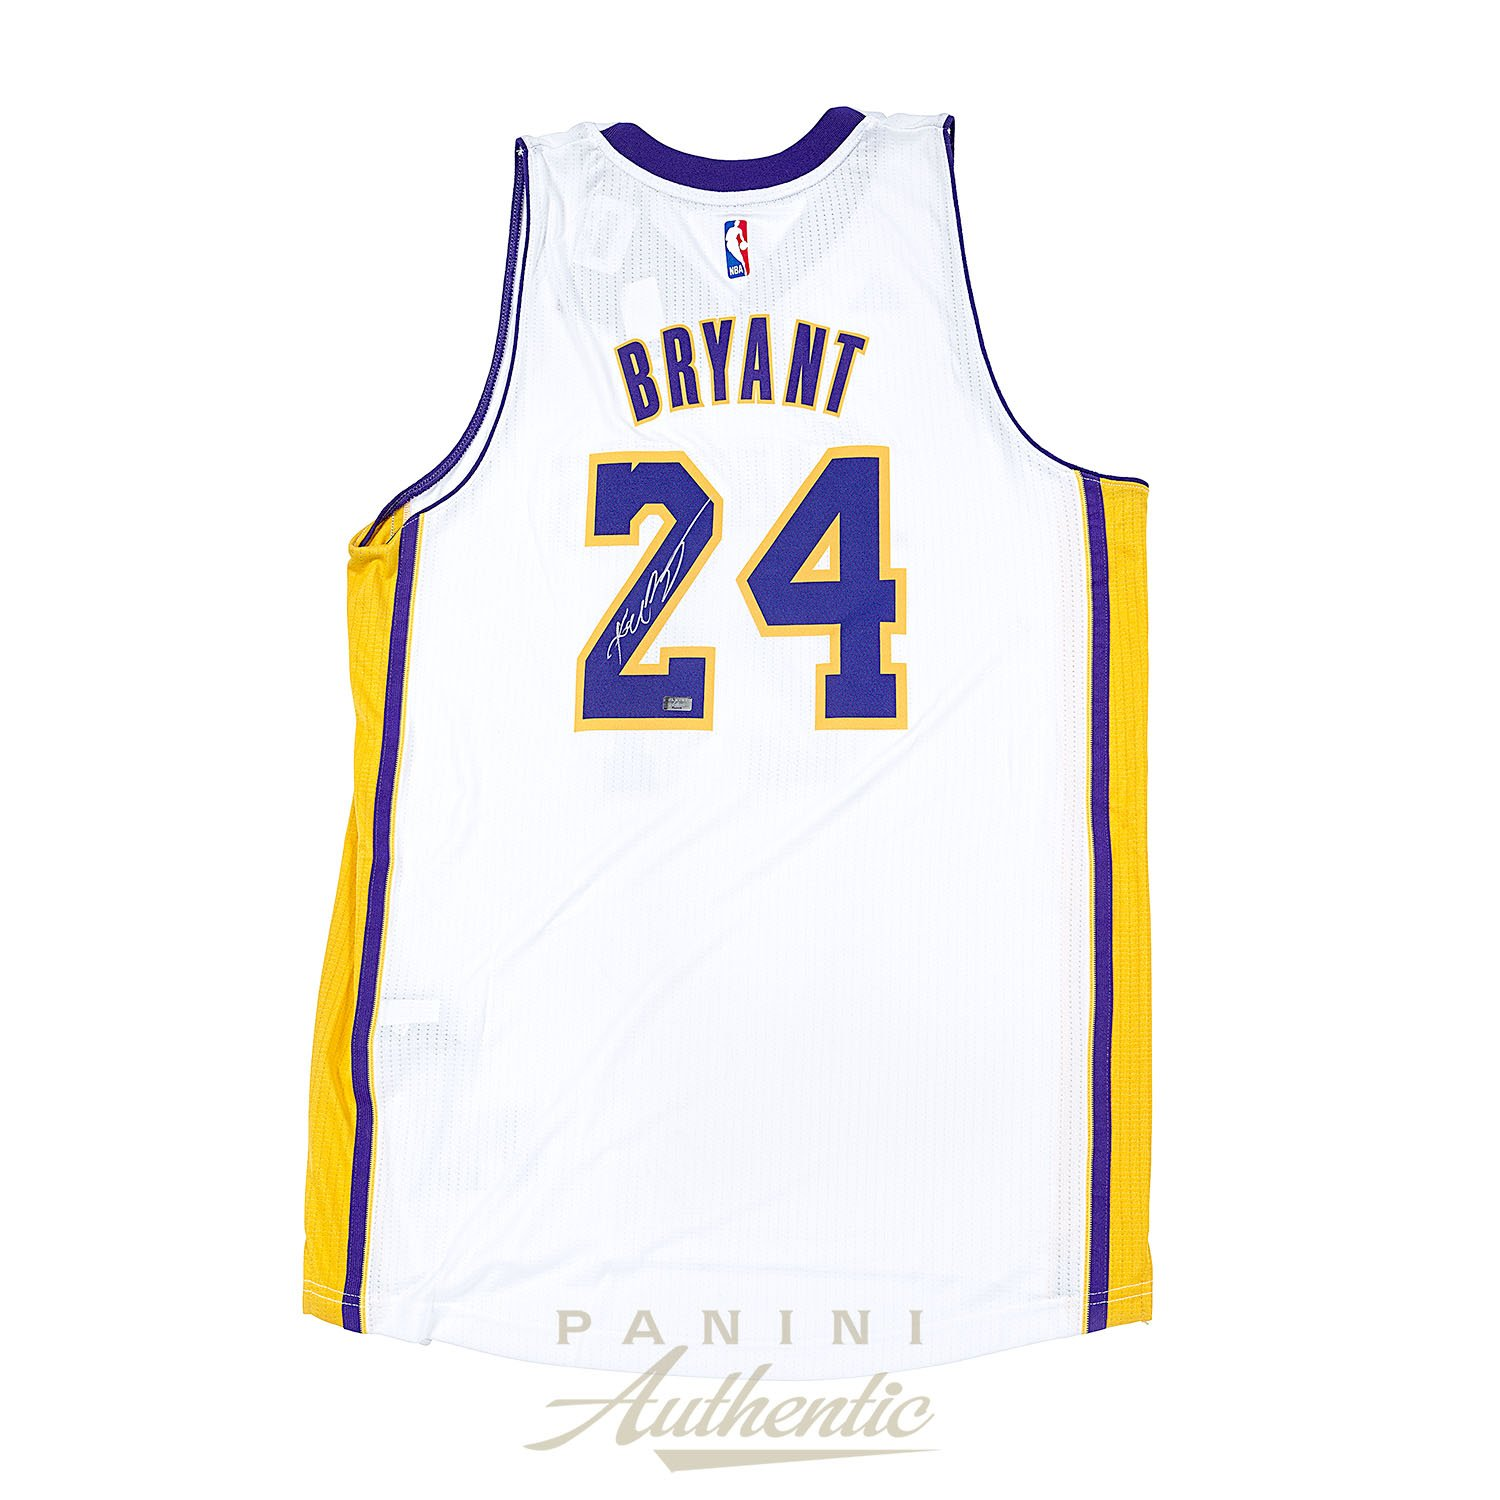 1746d9b79c6 Kobe Bryant Autographed Adidas White Swingman Jersey ~Open Edition Item~ at  Amazon s Sports Collectibles Store